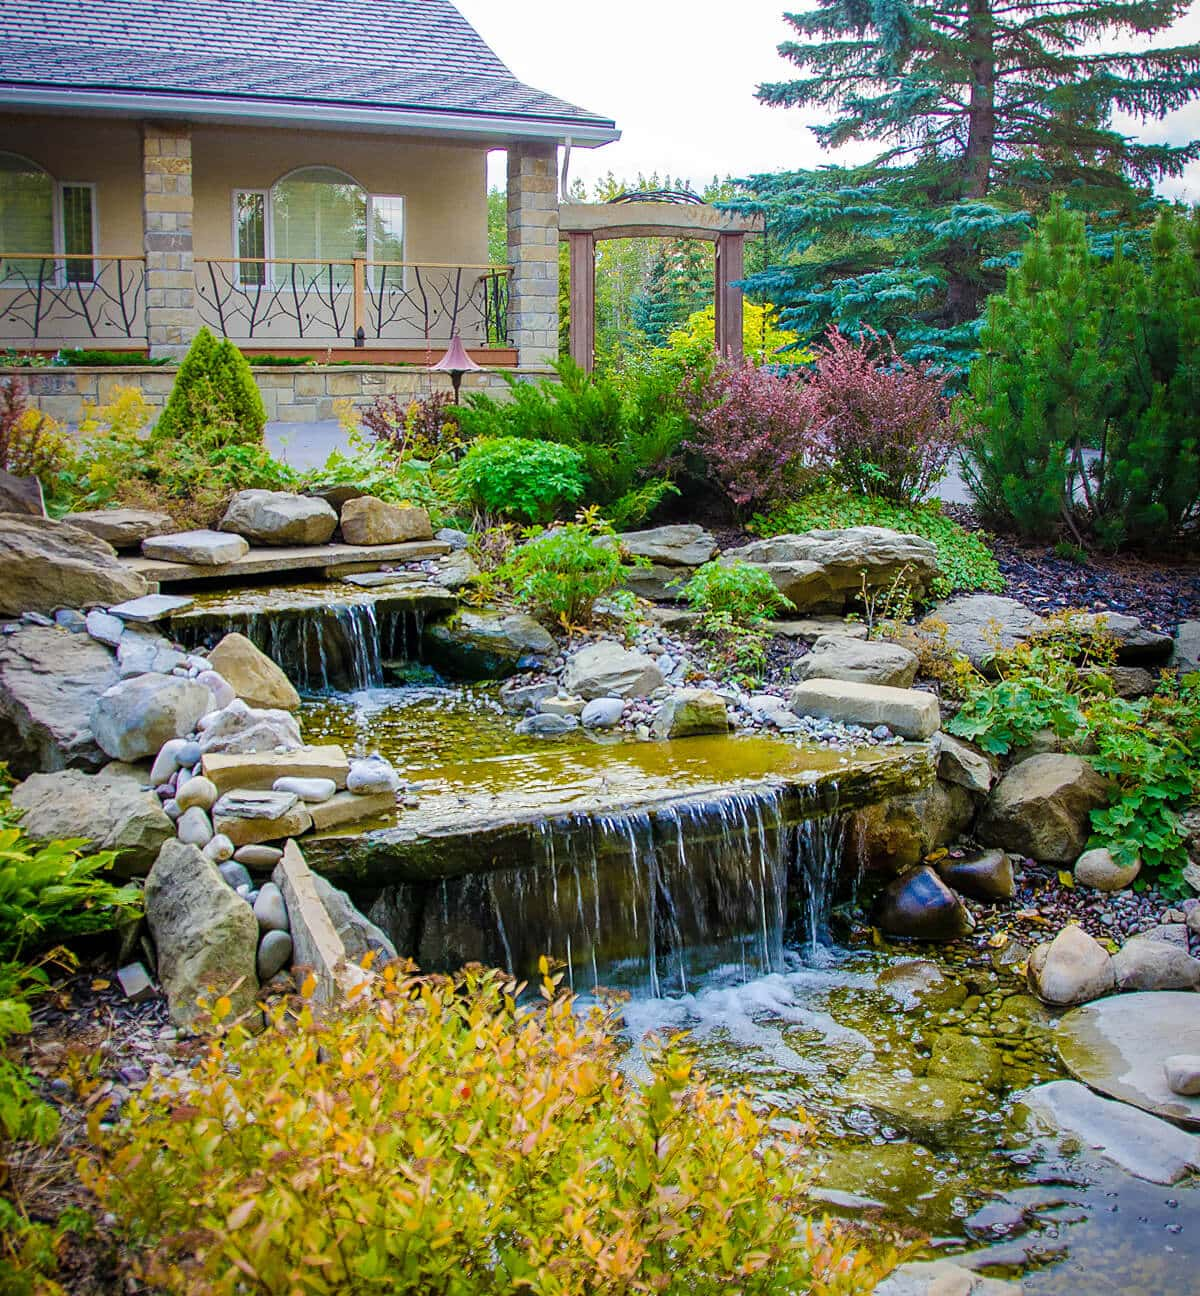 Custom yoga rock and storm water harvested pond